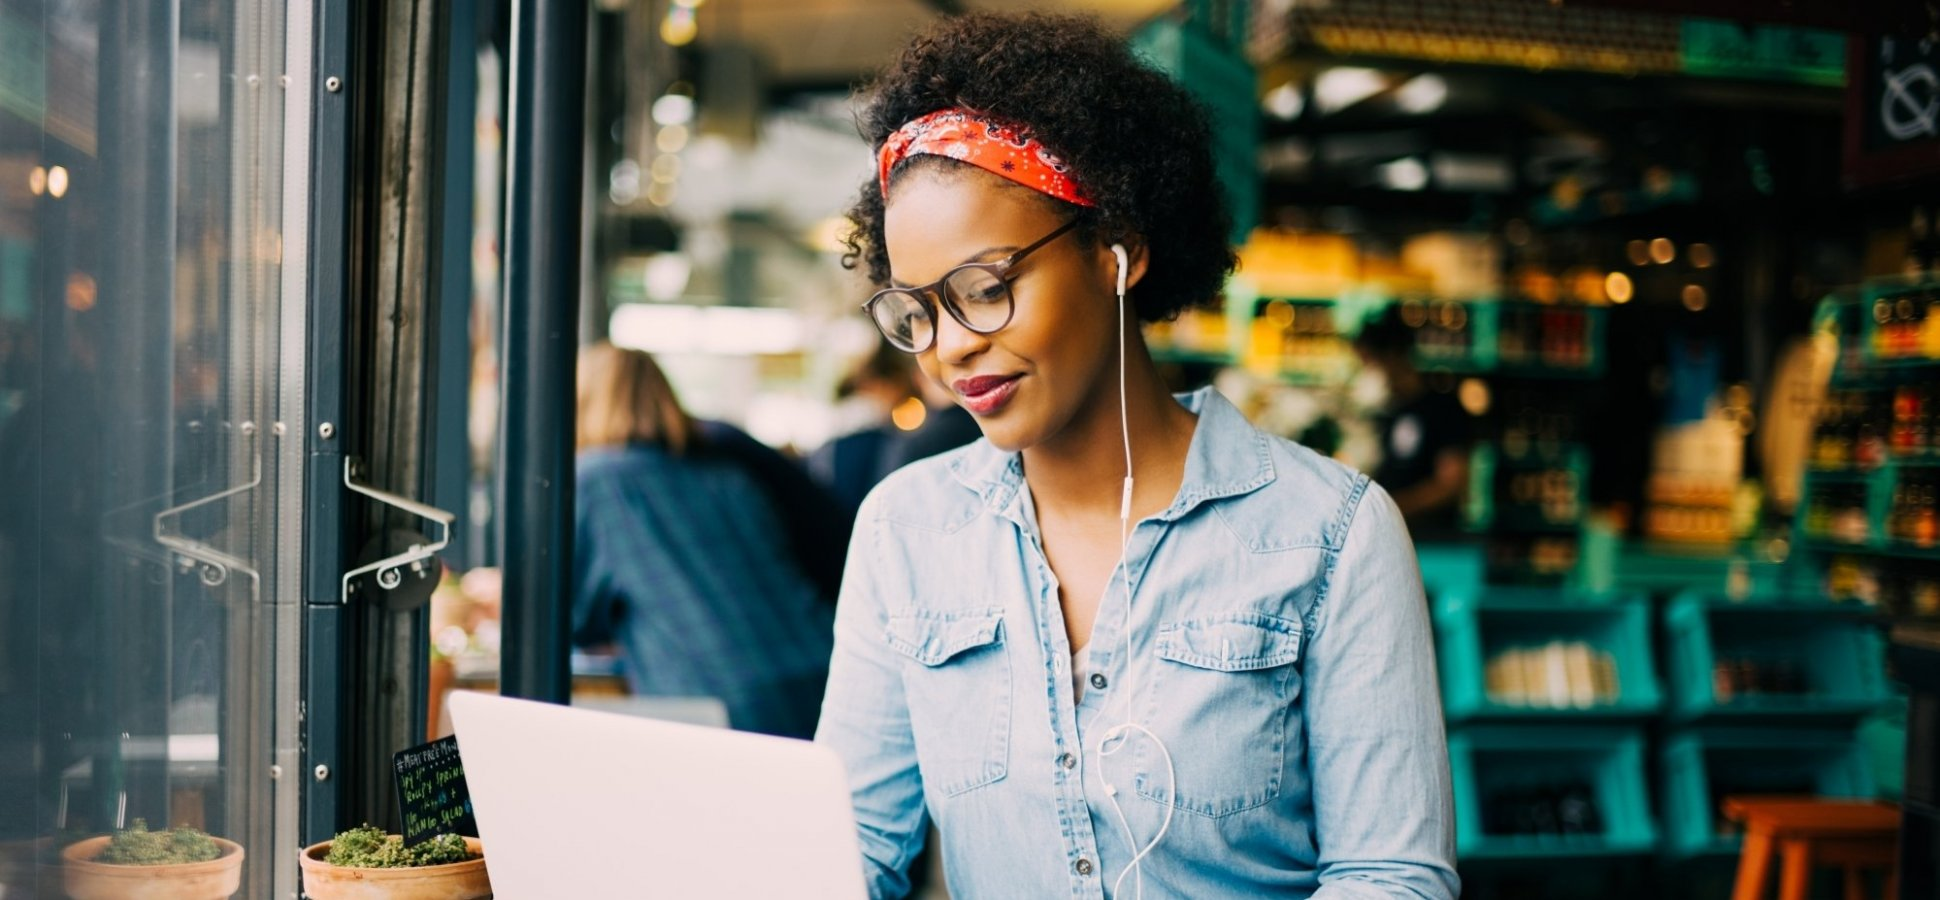 5 Ways Your Brand Can Earn the Loyalty of African-American Customers